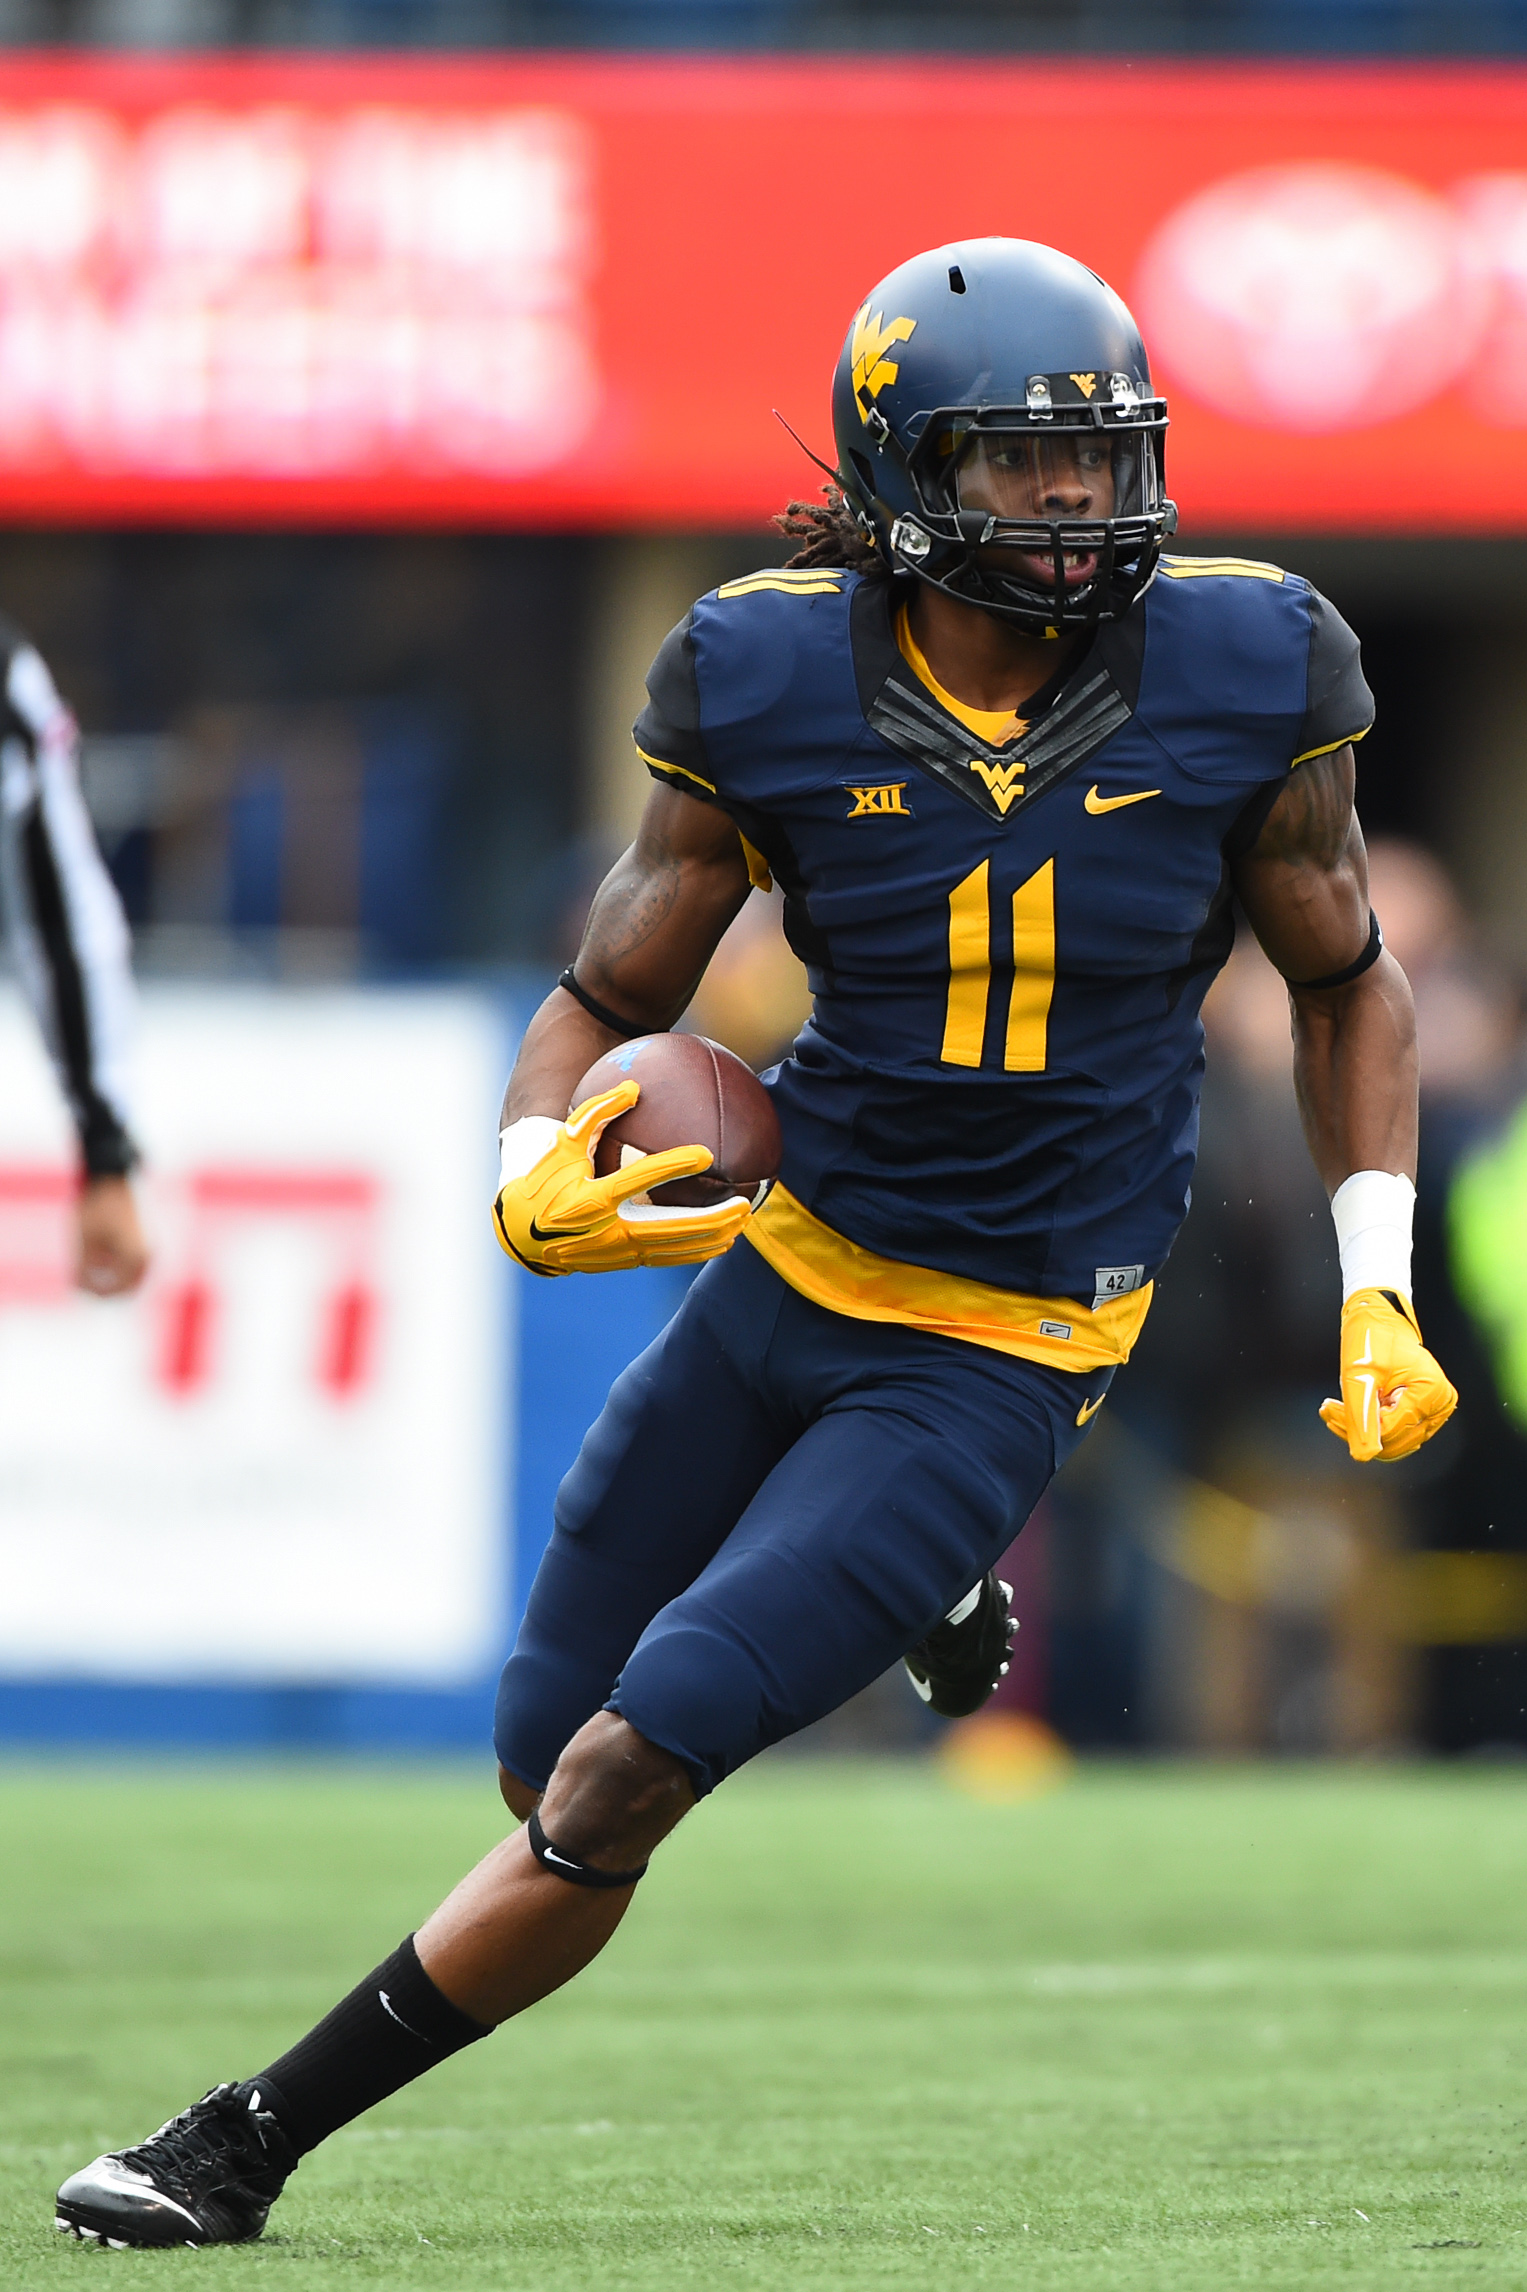 Kevin White might have the highest upside of any receiver in the NFL Draft